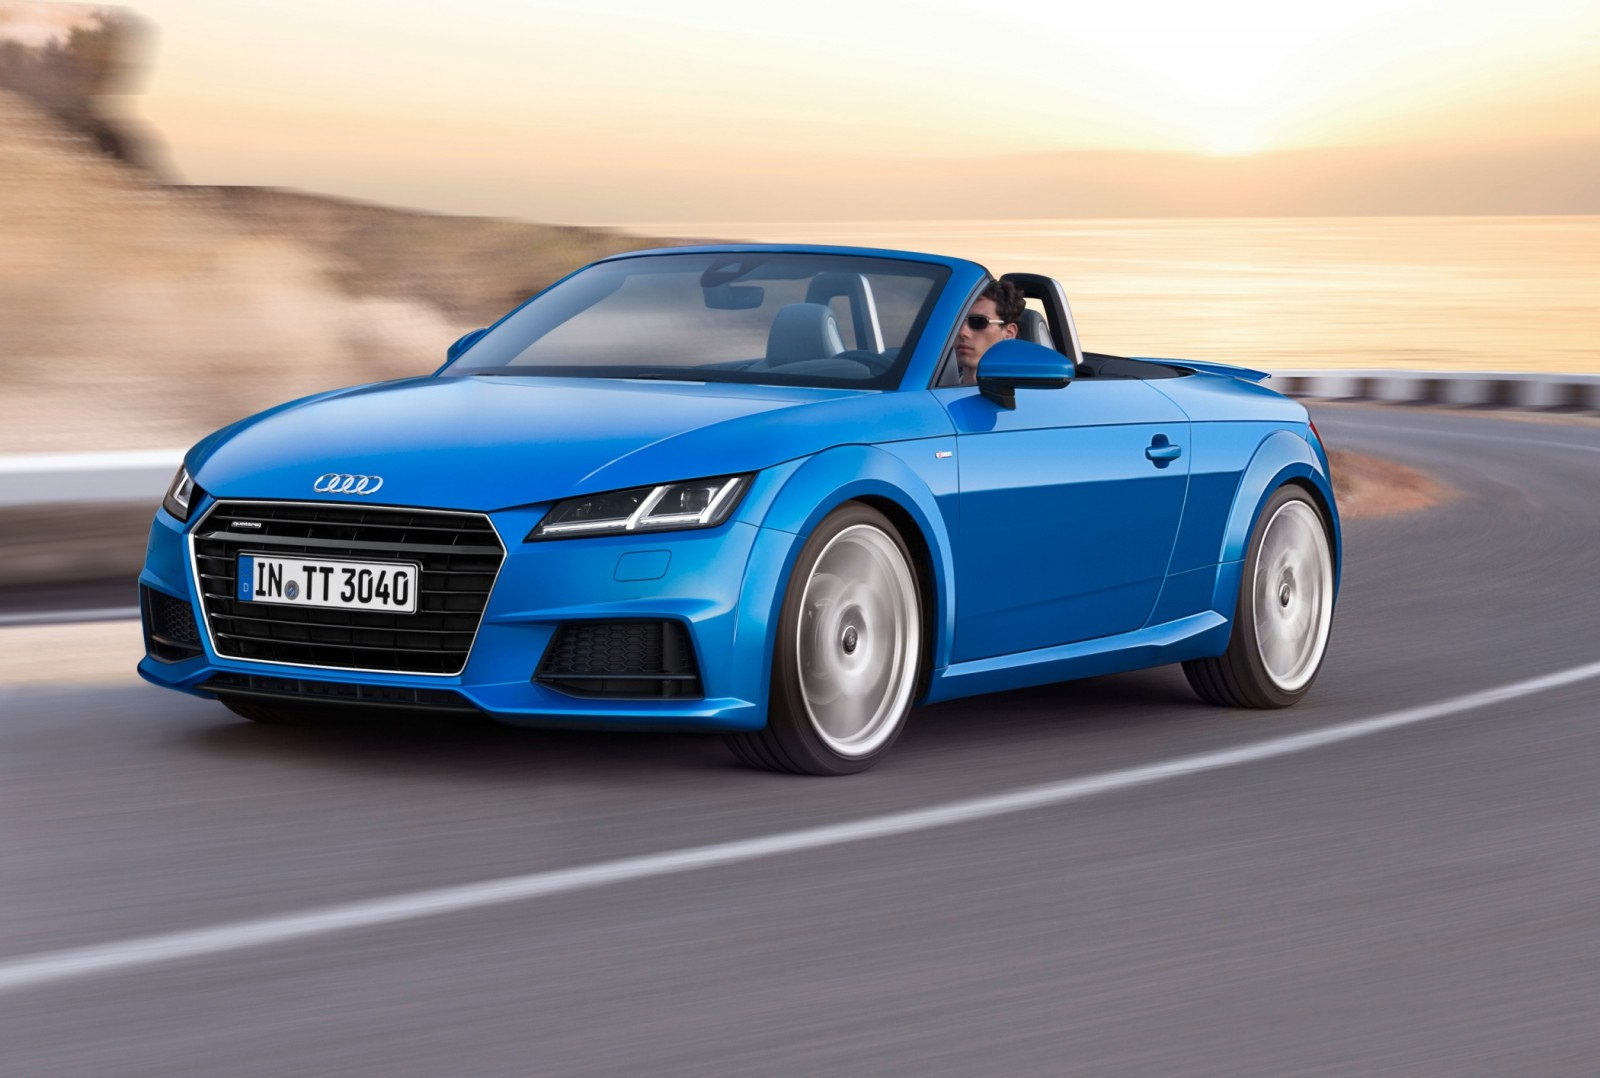 2015 Audi TT and TTS Roadster Revealed Before Paris Show 10